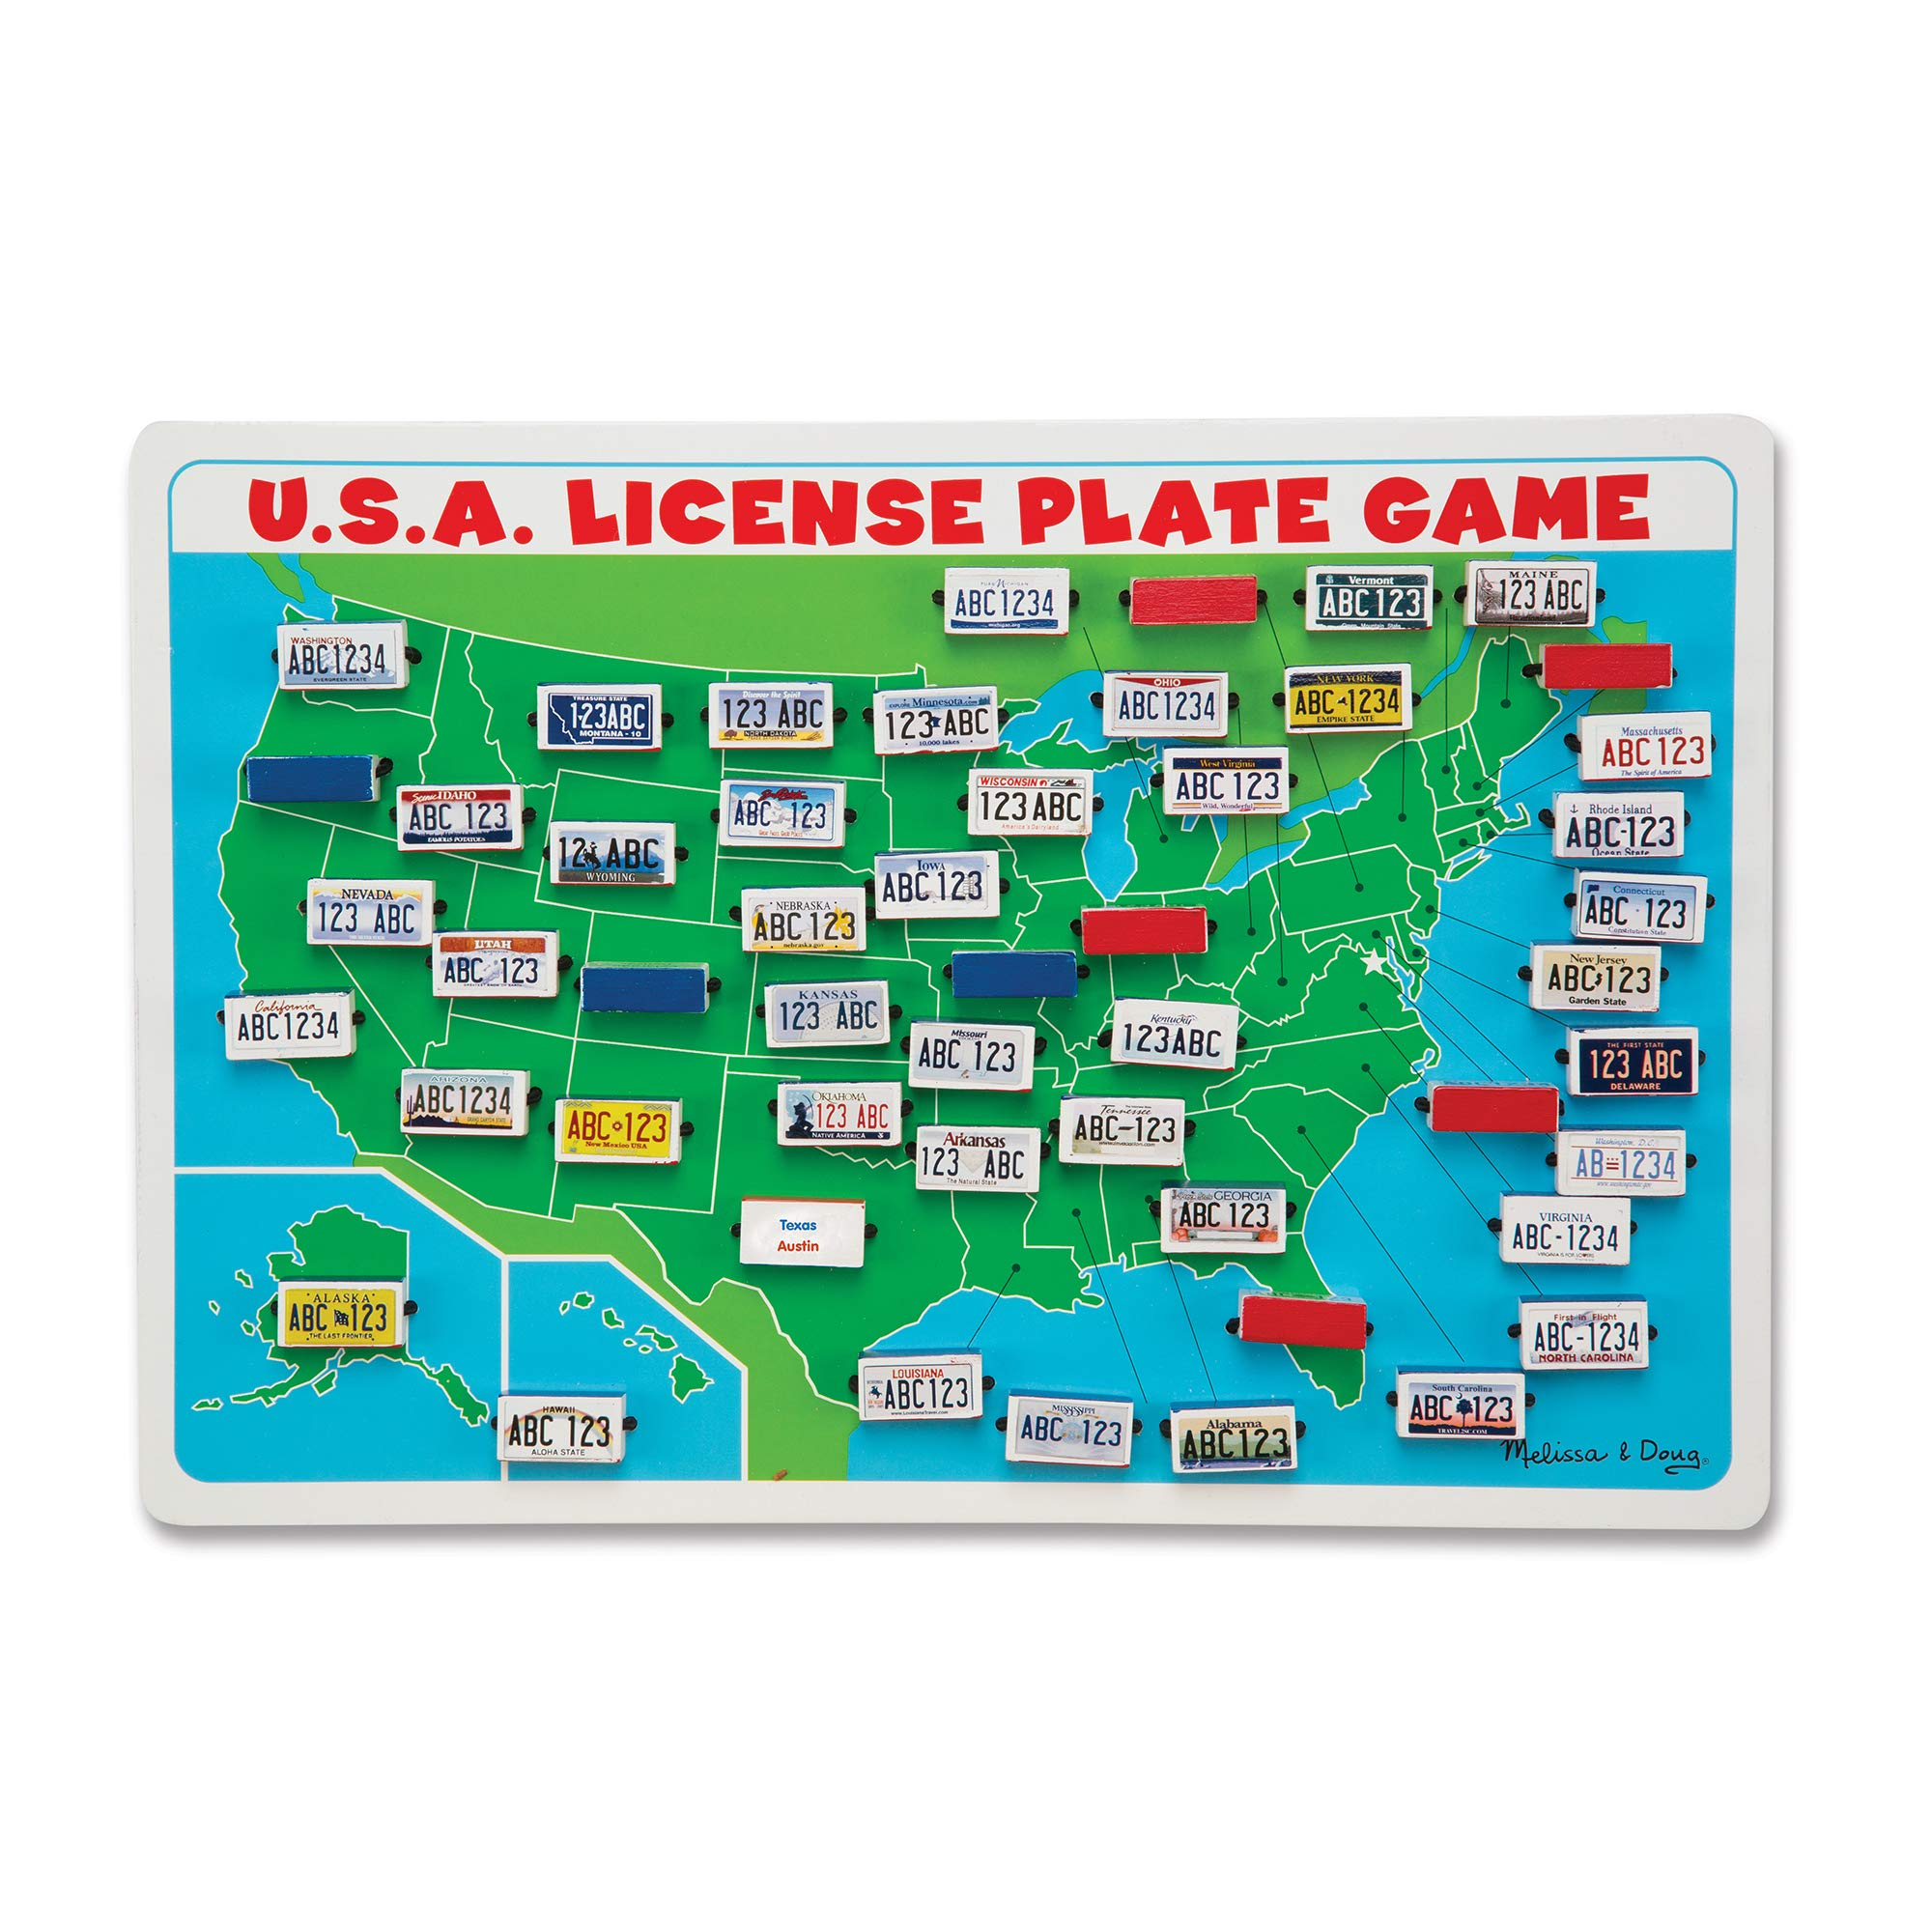 Melissa & Doug U.S.A. License Plate Game (Wooden ''Flip to Win'' Travel Game, Two Players, Great Gift for Girls and Boys - Best for 5, 6, and 7 Year Olds) by Melissa & Doug